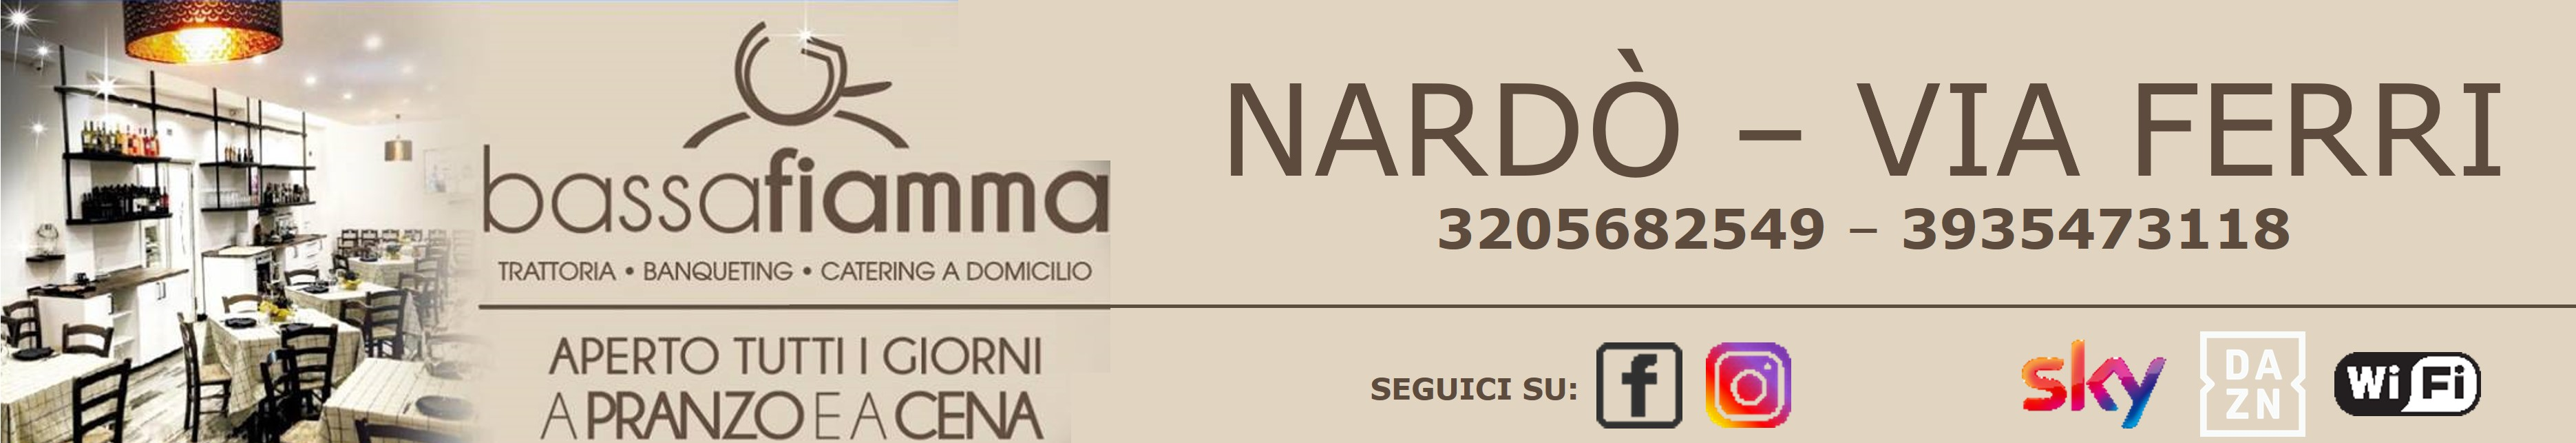 NardòNews24.it